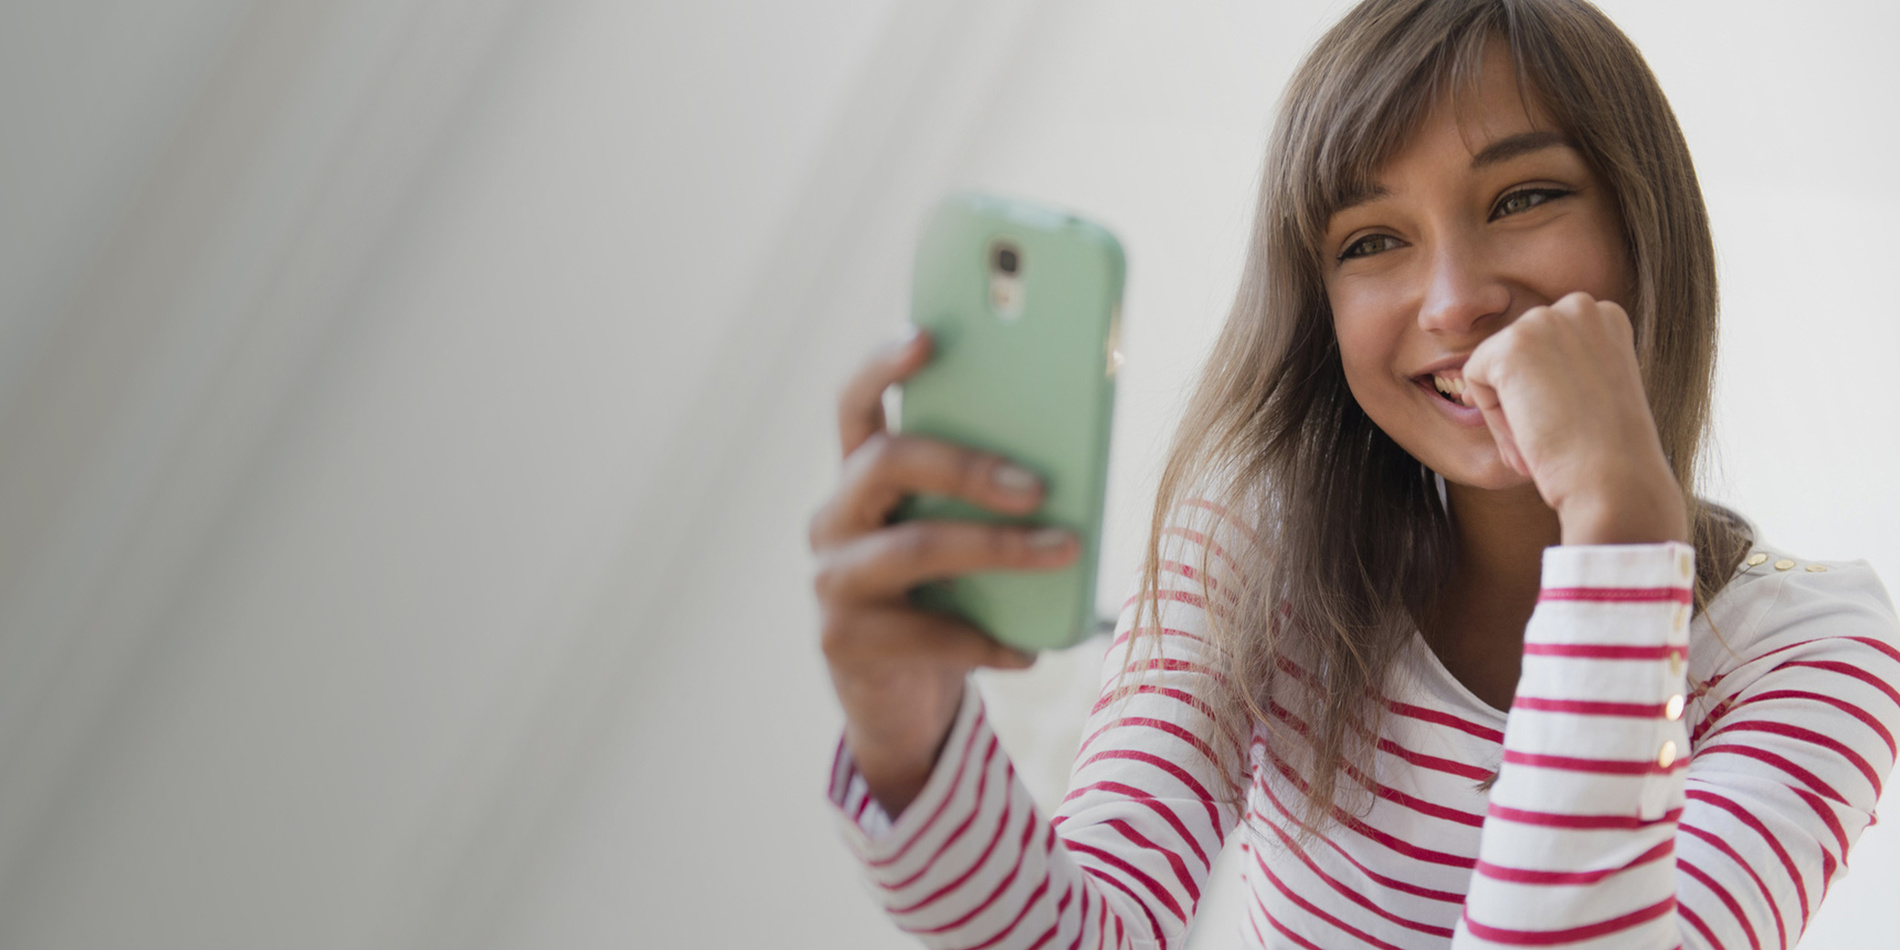 Photo of a young woman smiling at her Altice Mobile connected smart phone